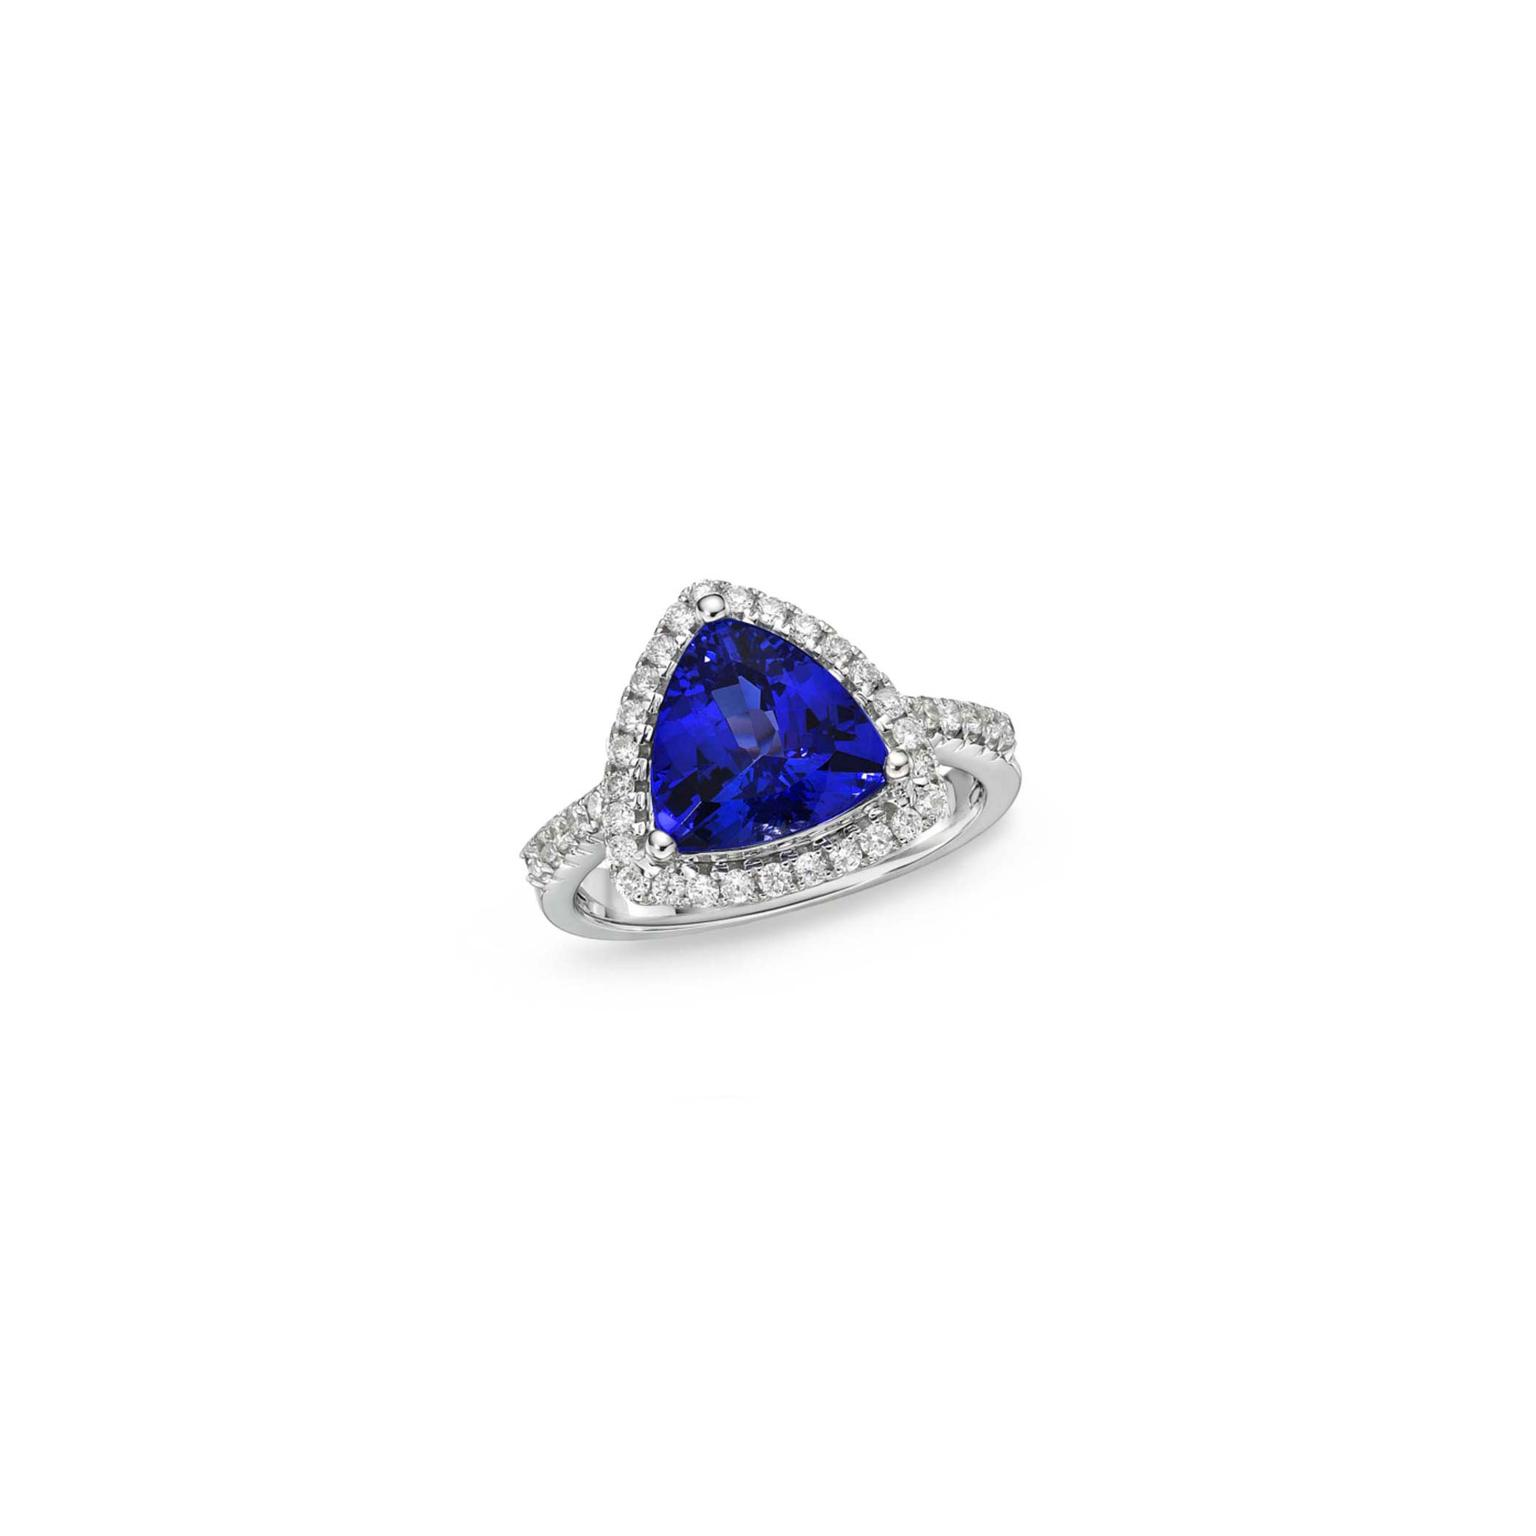 tanzanite listing december il cut fullxfull gemstone loose natural quality trillion aaa birthstone